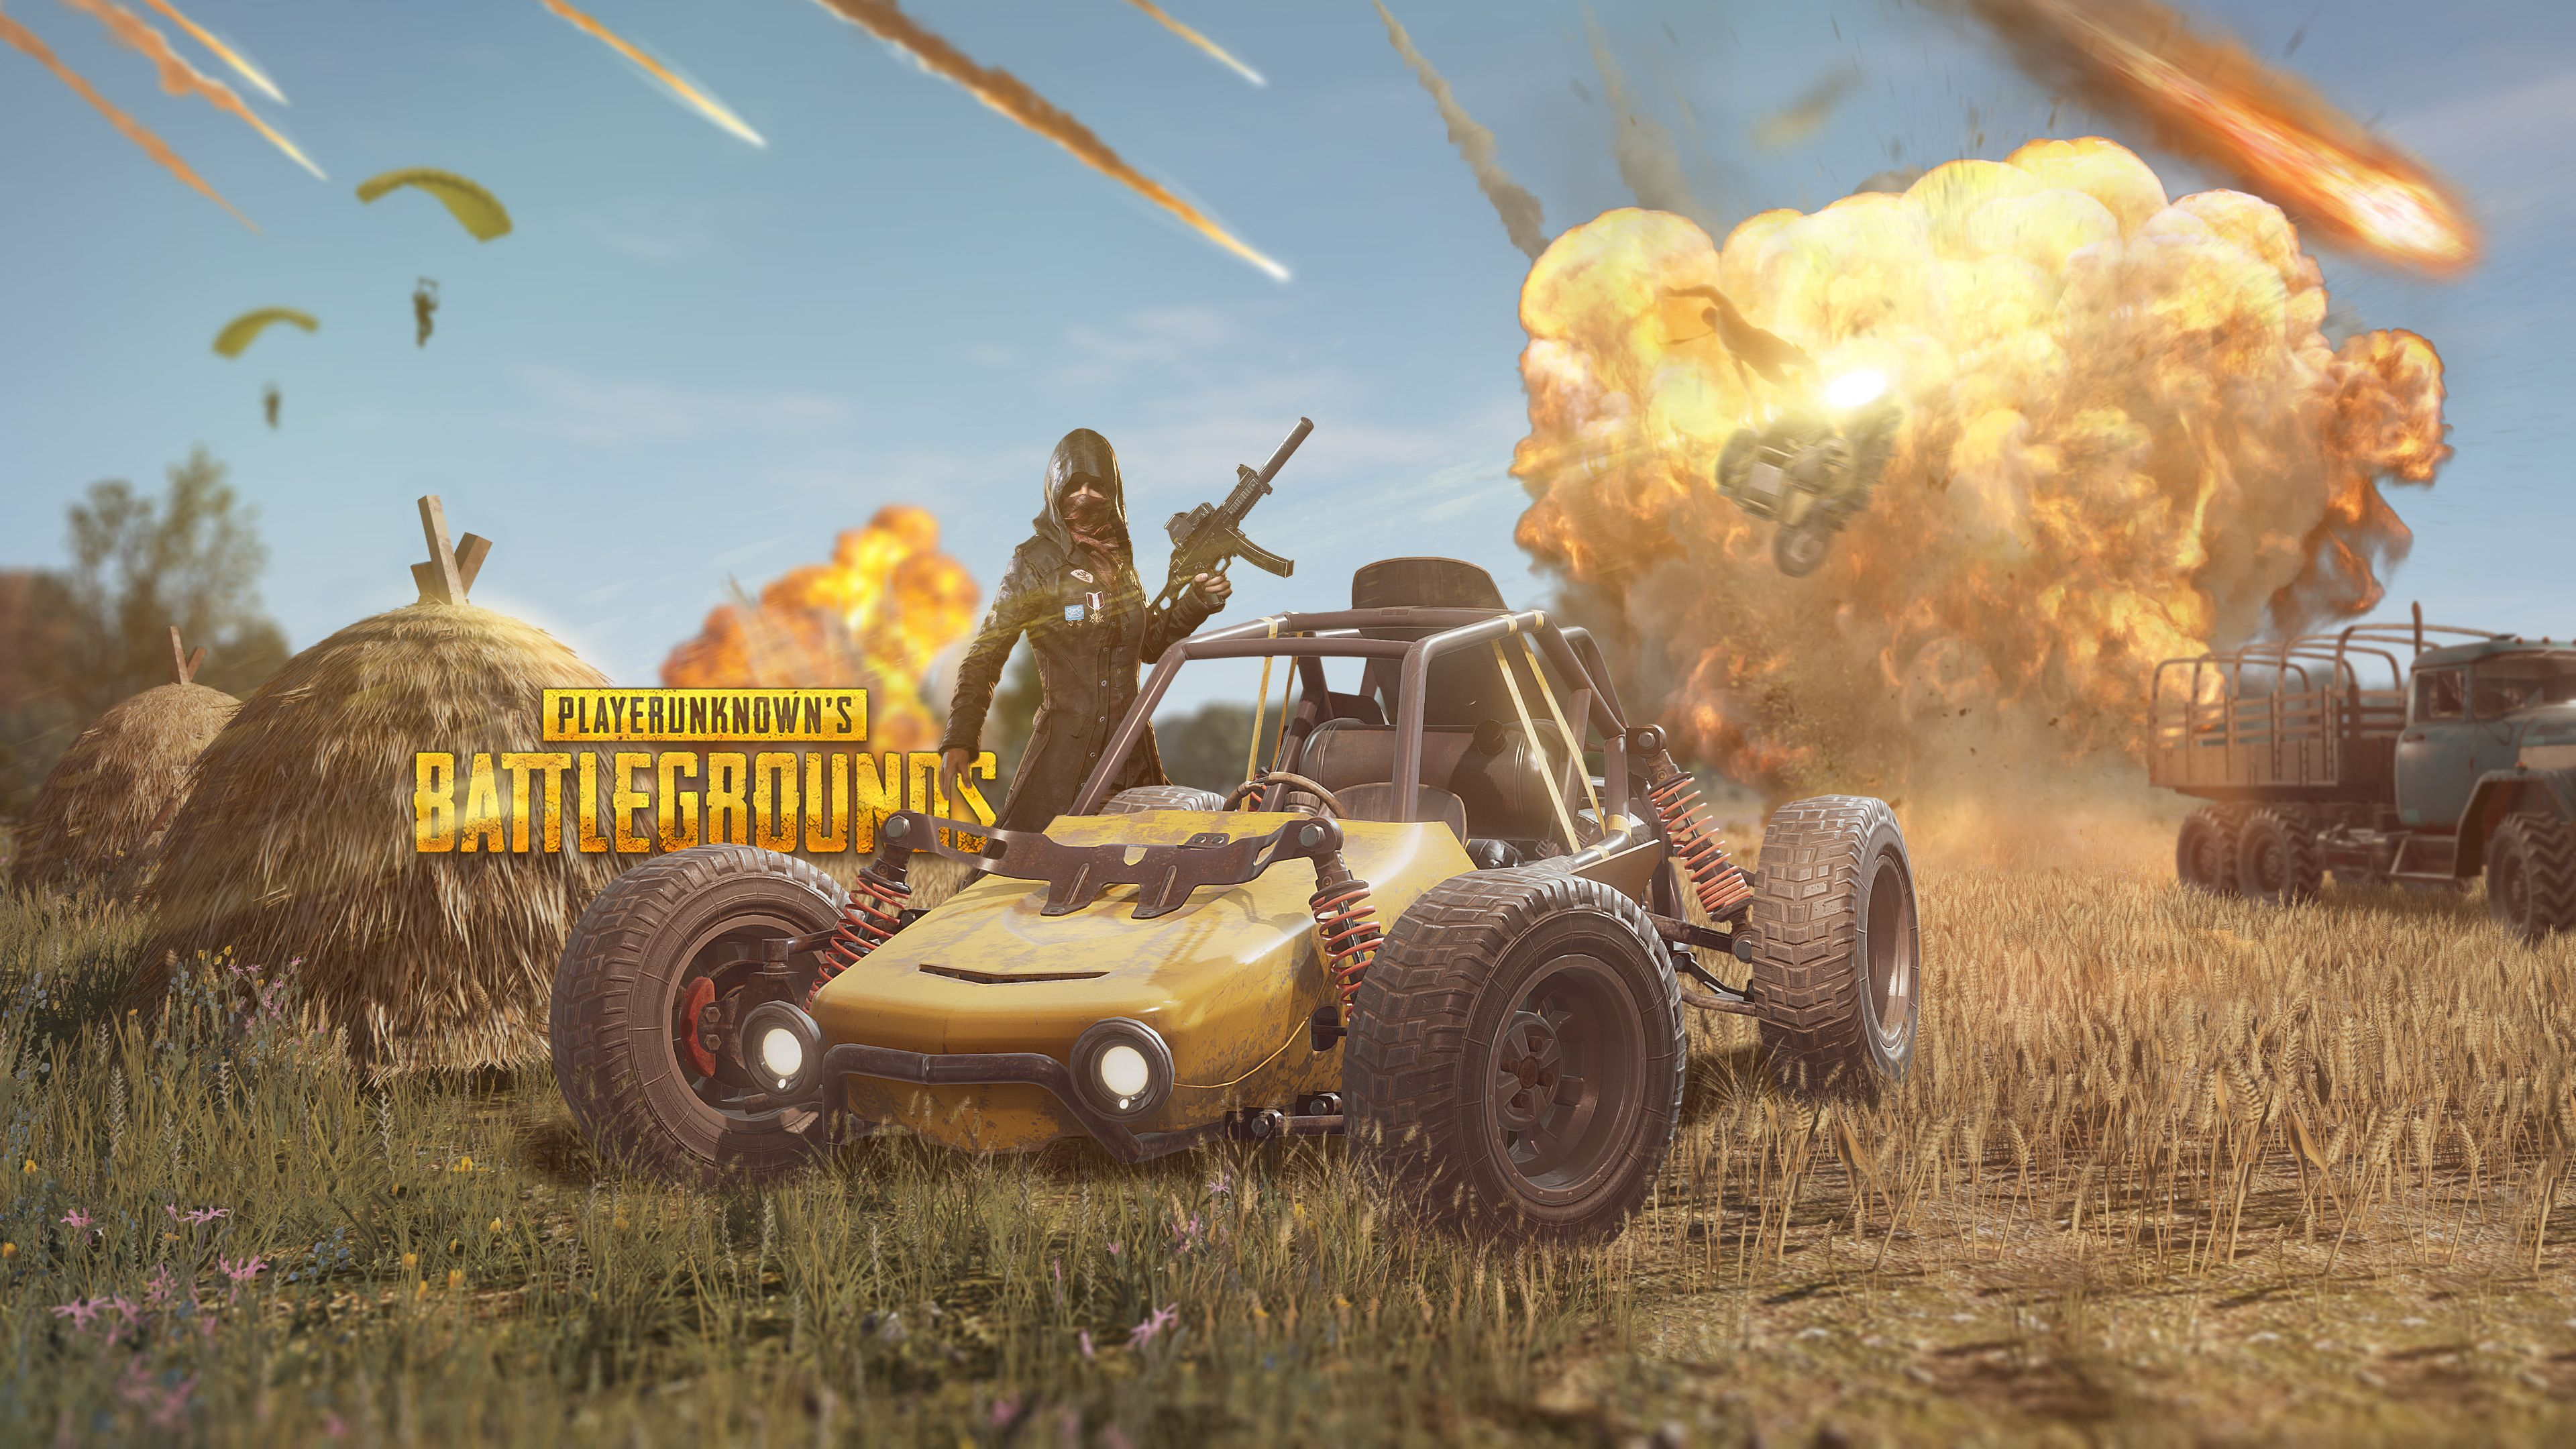 Pubg Wallpapers Widescreen On Wallpaper P Hd